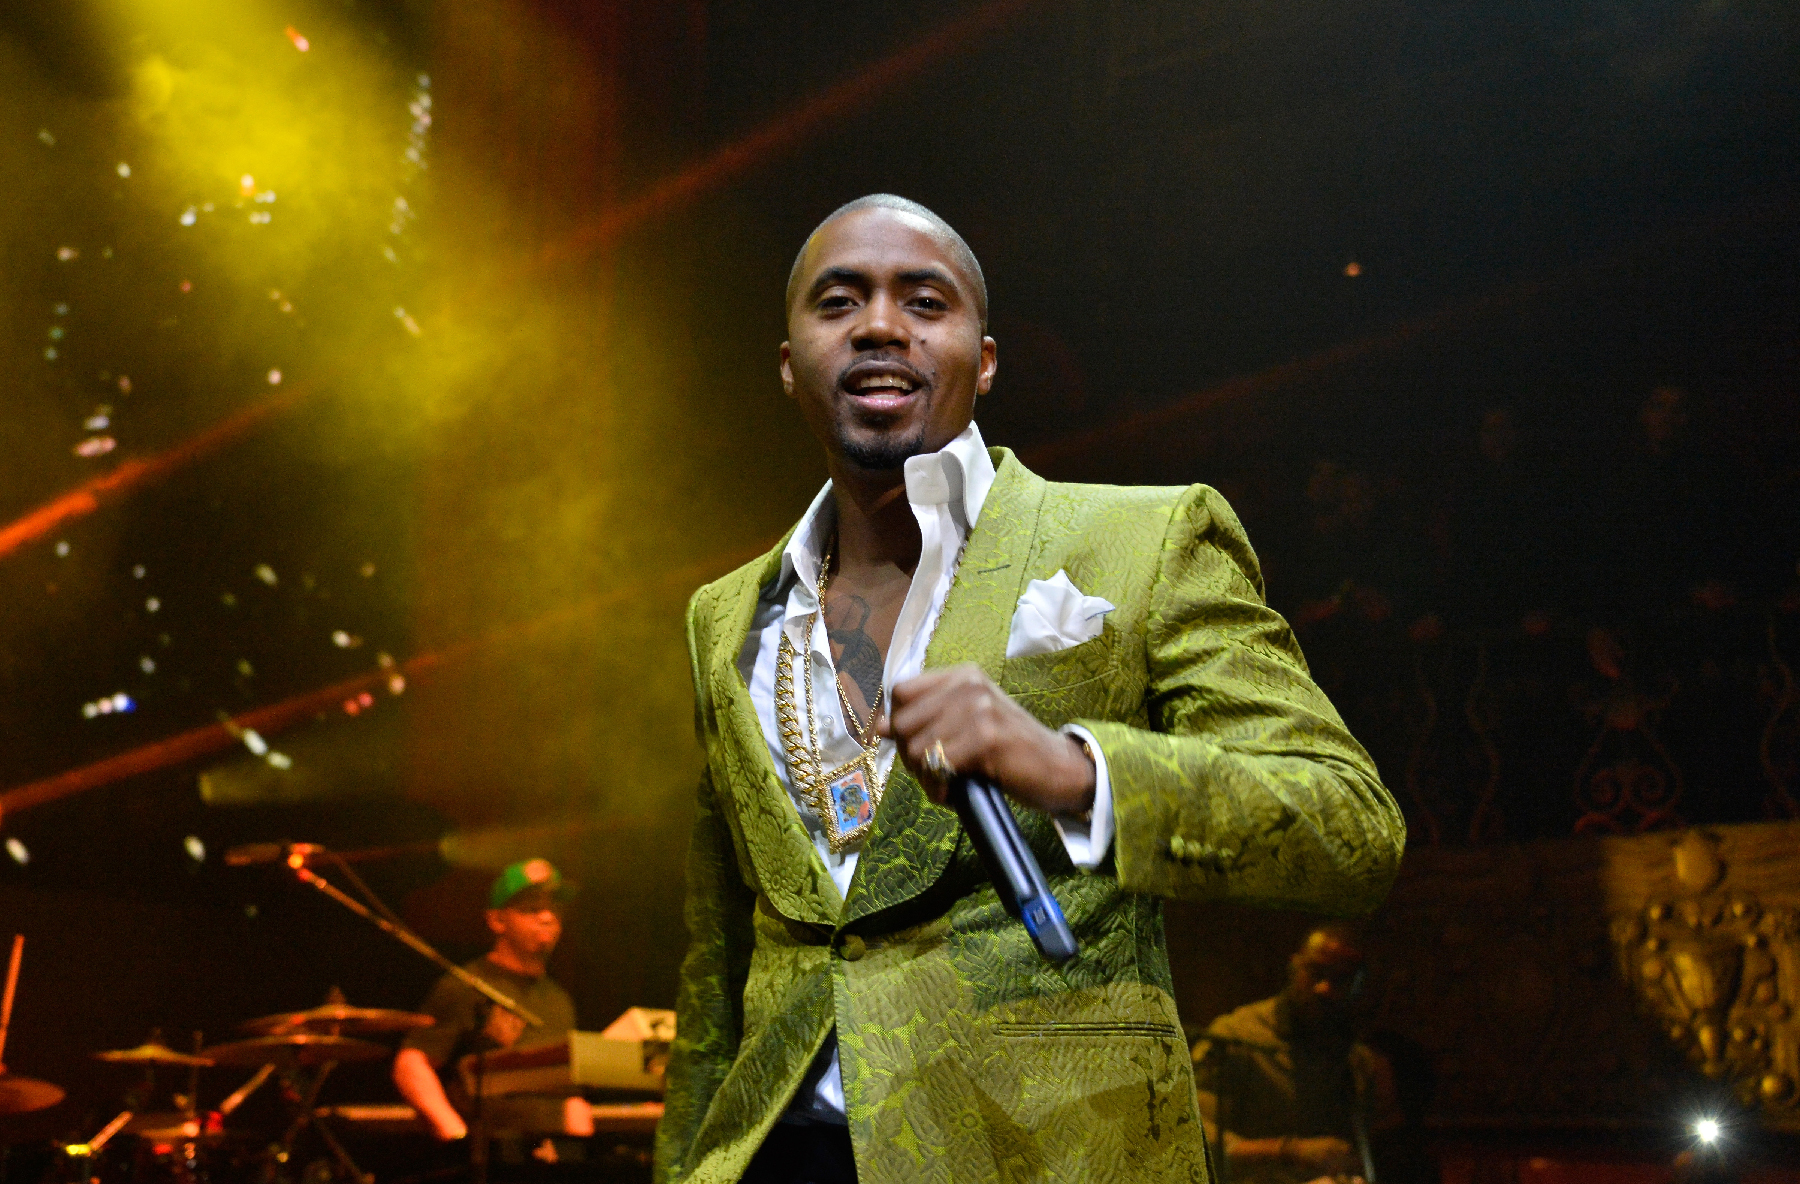 Nas Vows Autobiographical Series 'Street Dreams' Is Fully 'Authentic'